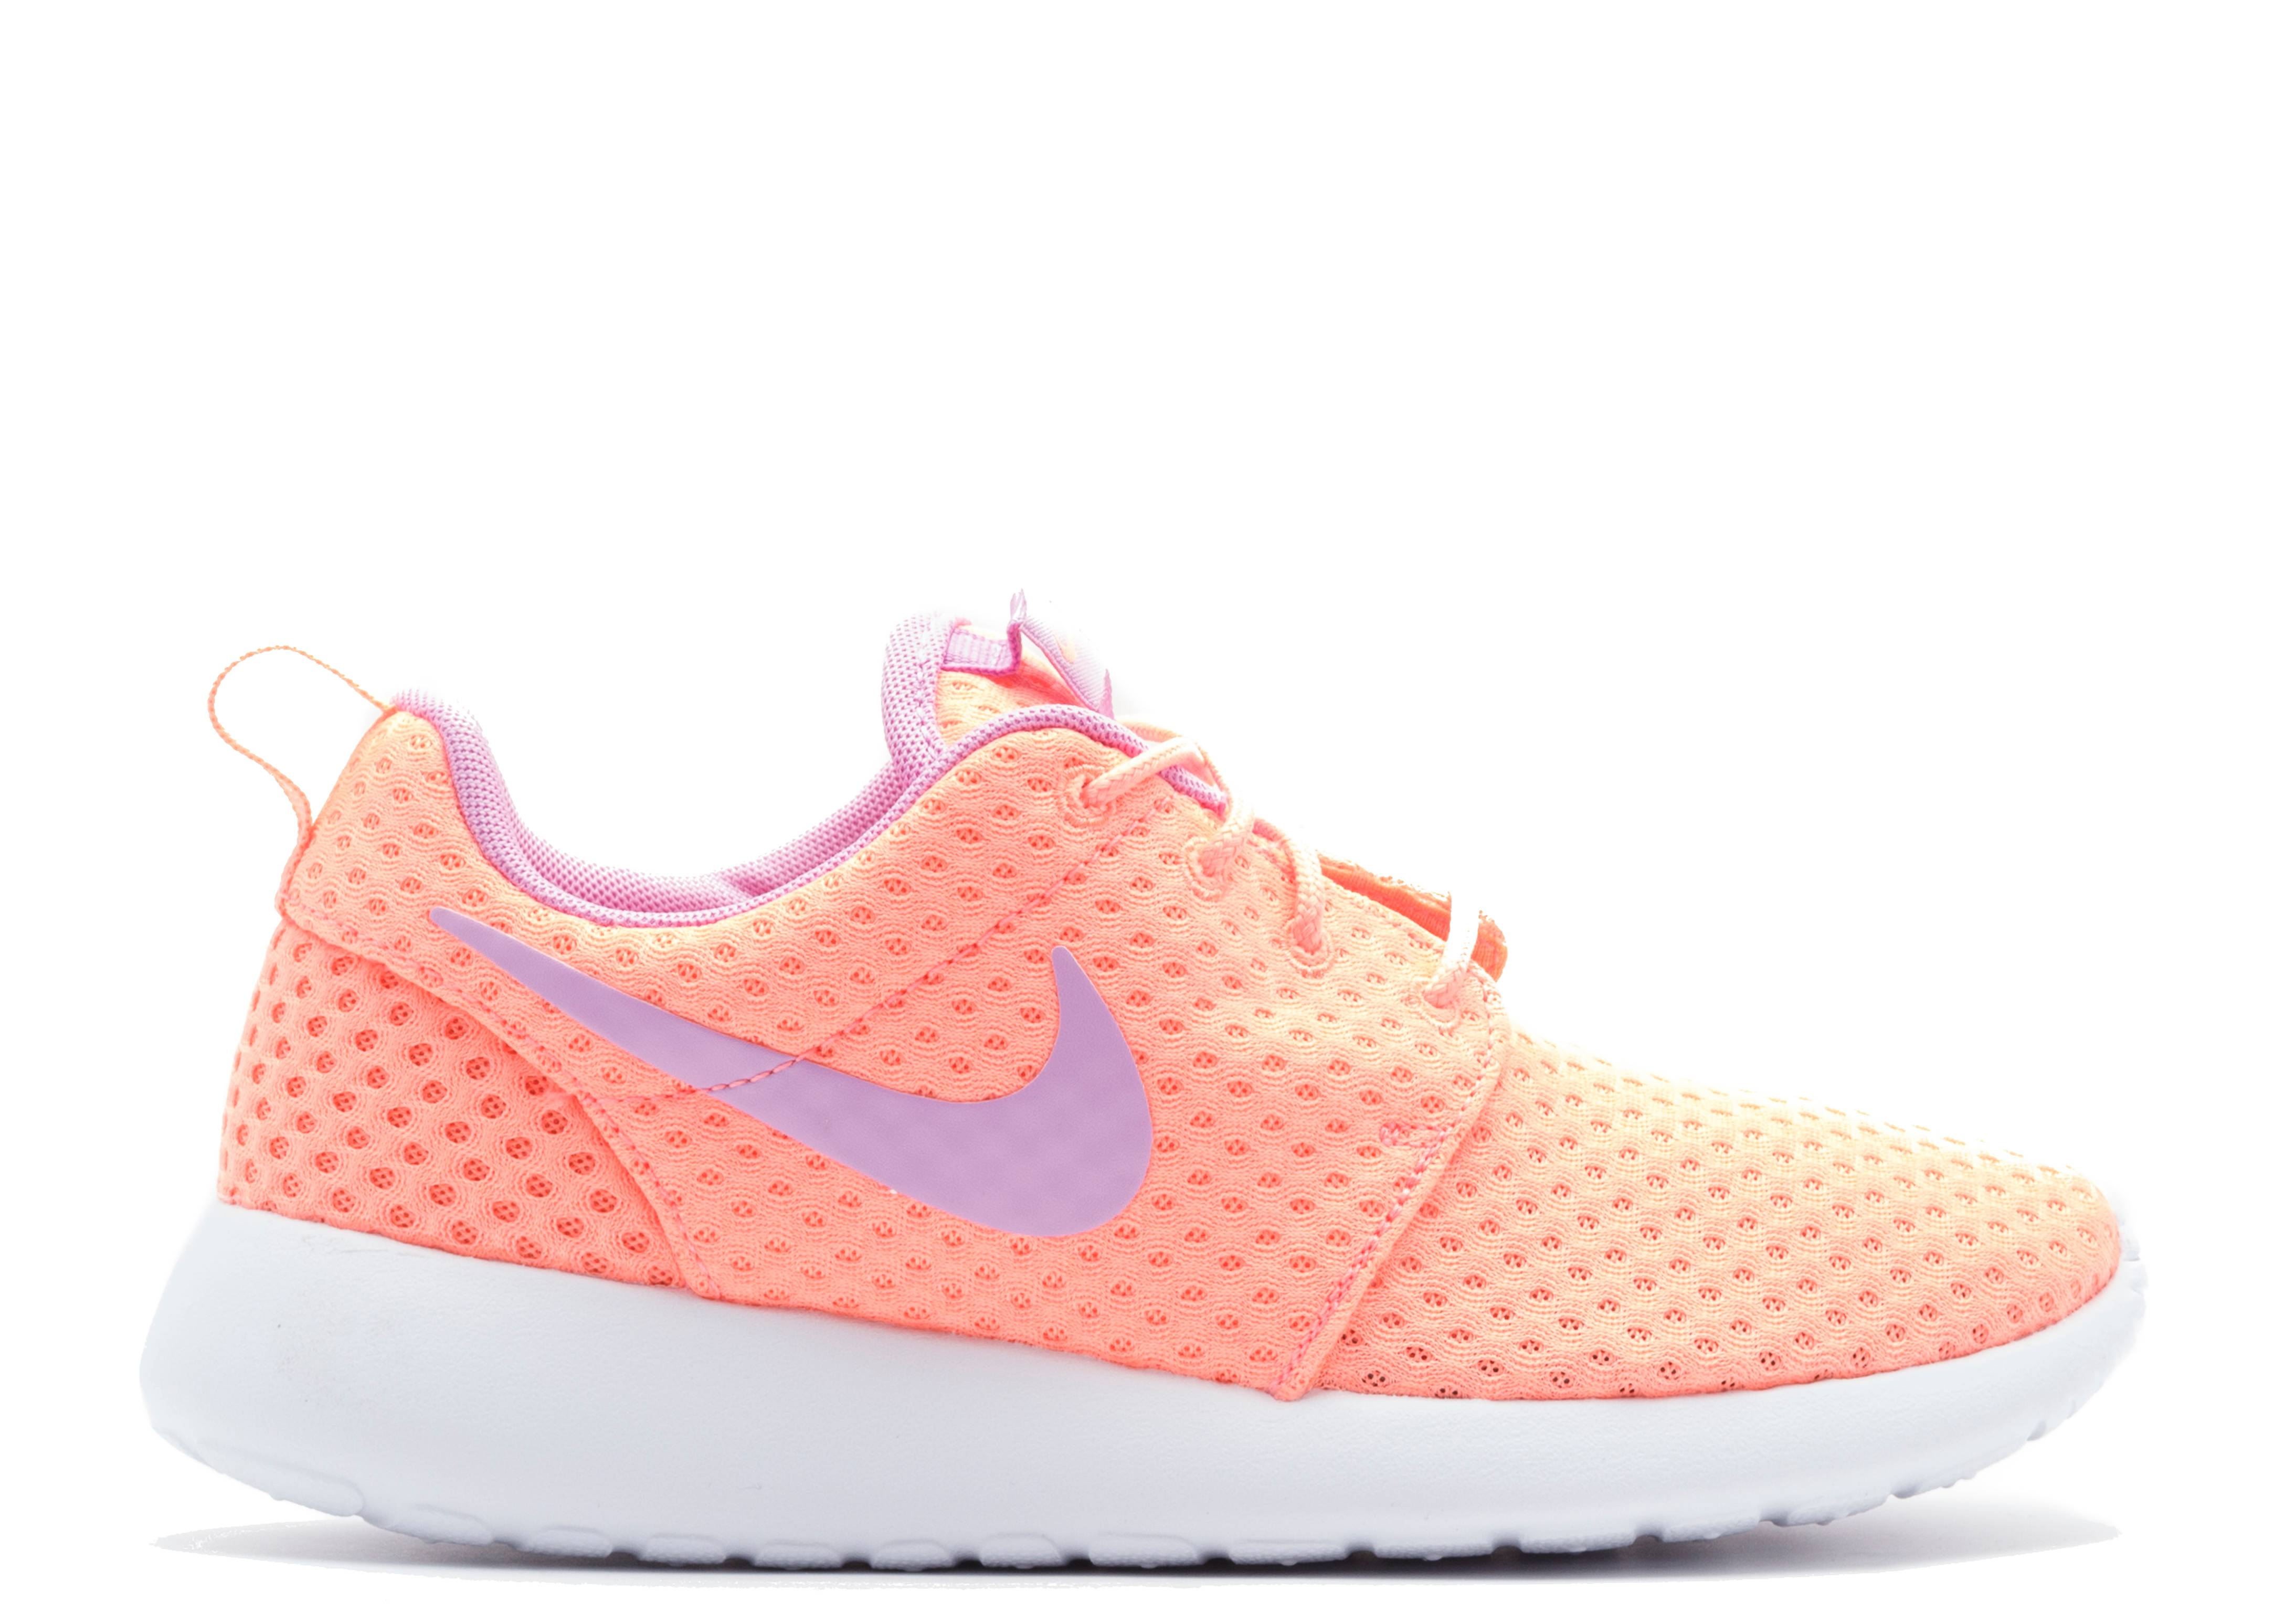 w's roshe one br